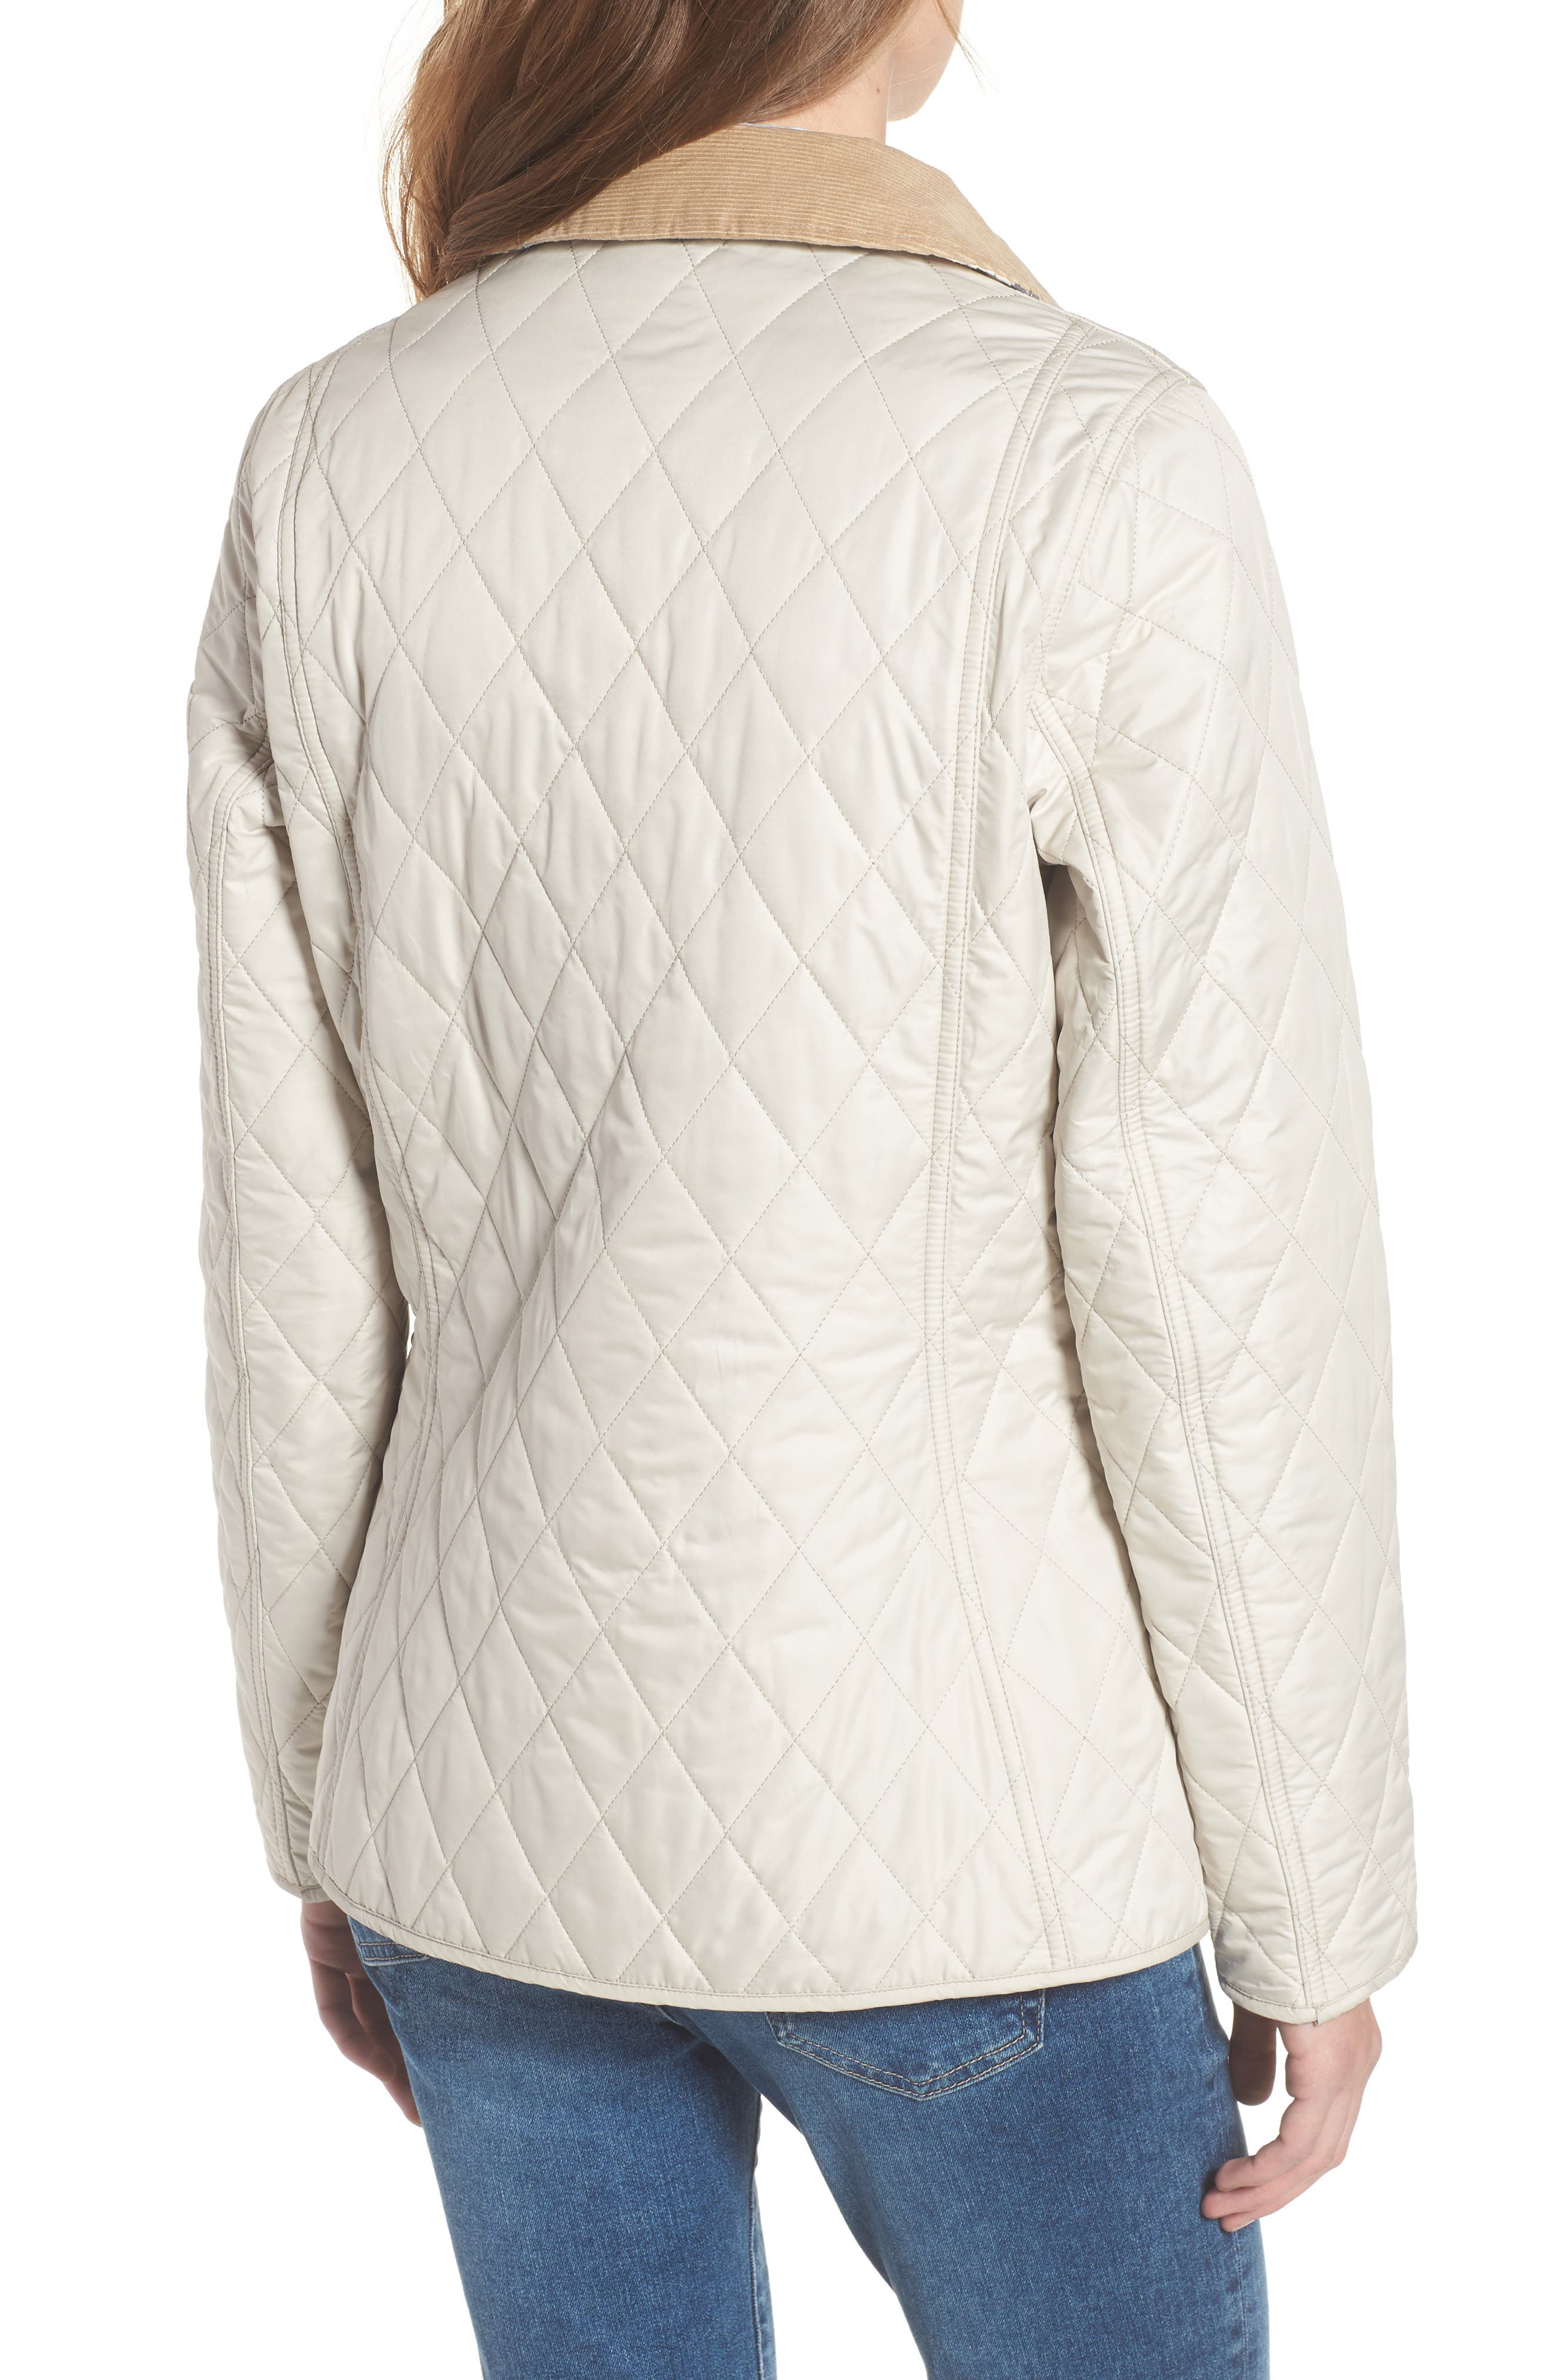 BARBOUR, Spring Annandale Quilted Jacket, Alternate thumbnail 2, color, 270